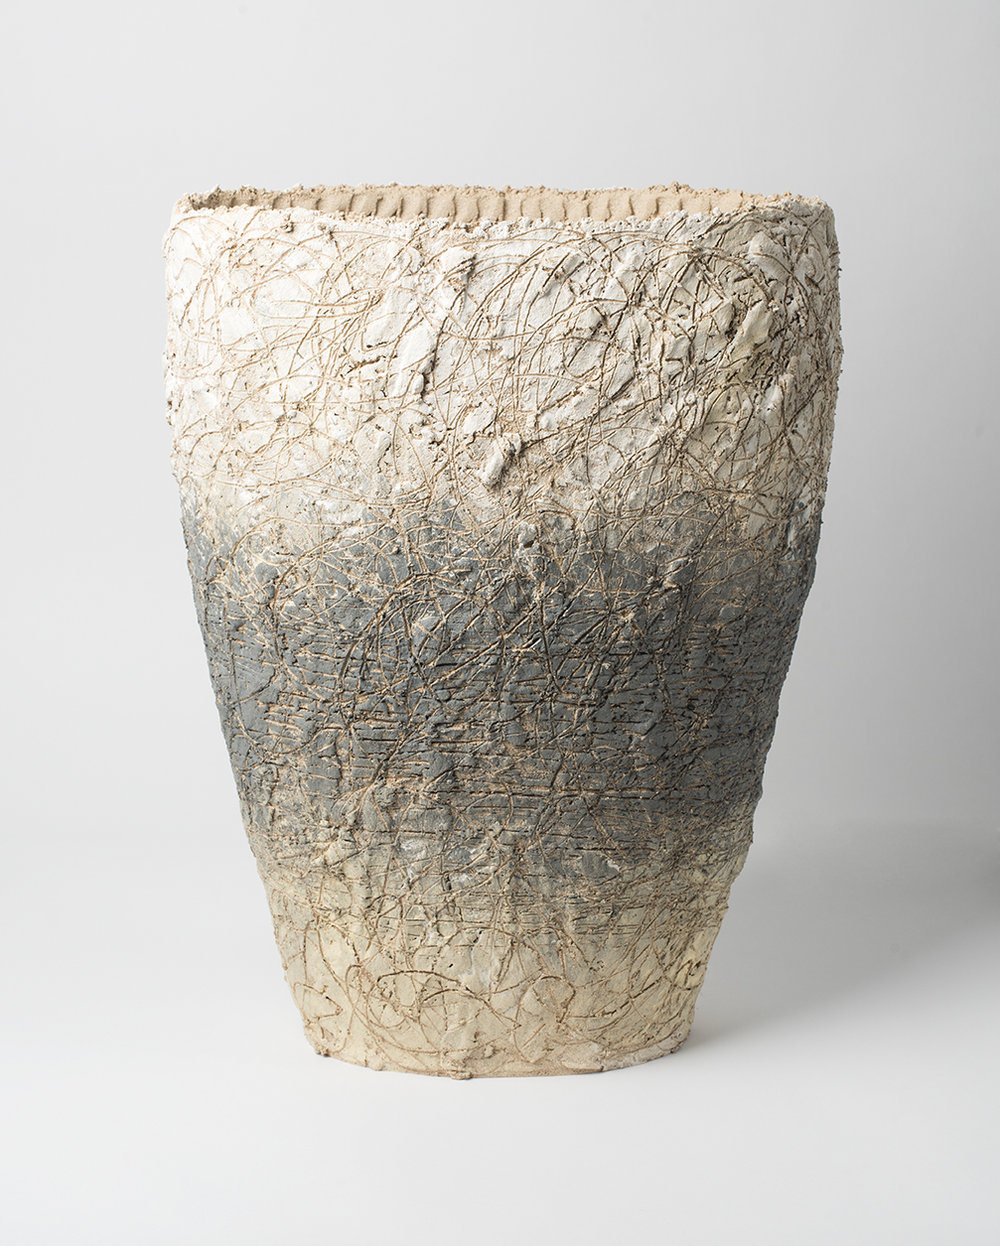 121. SOLD NC Sarah Purvey Landscape Series Float 46cm H x 34cm W x 23cmD £855.00.jpg